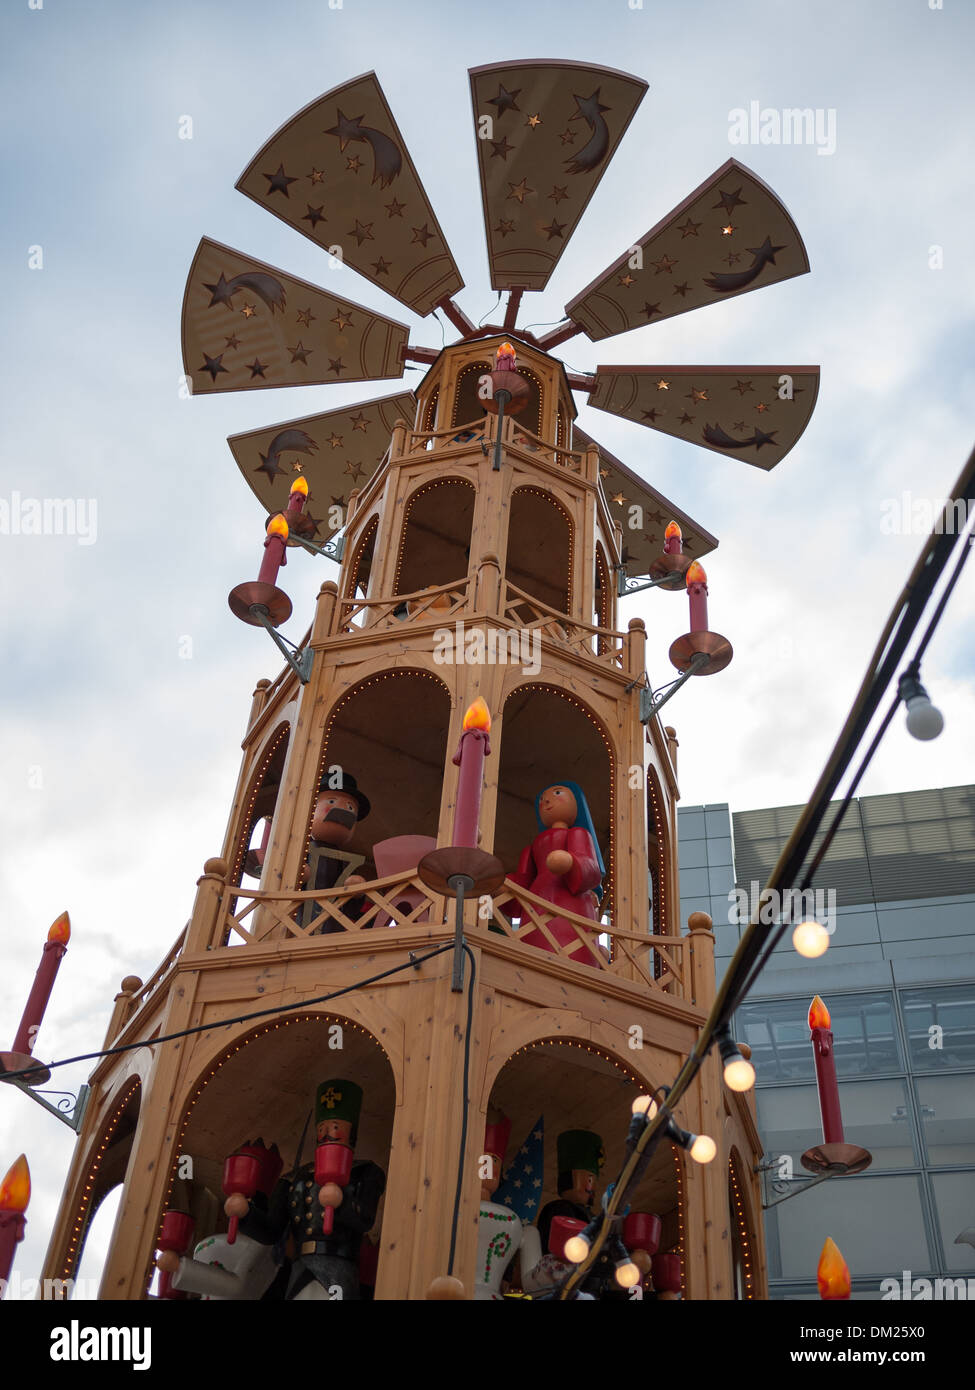 Decorative windmill at Manchester Christmas Markets - Stock Image